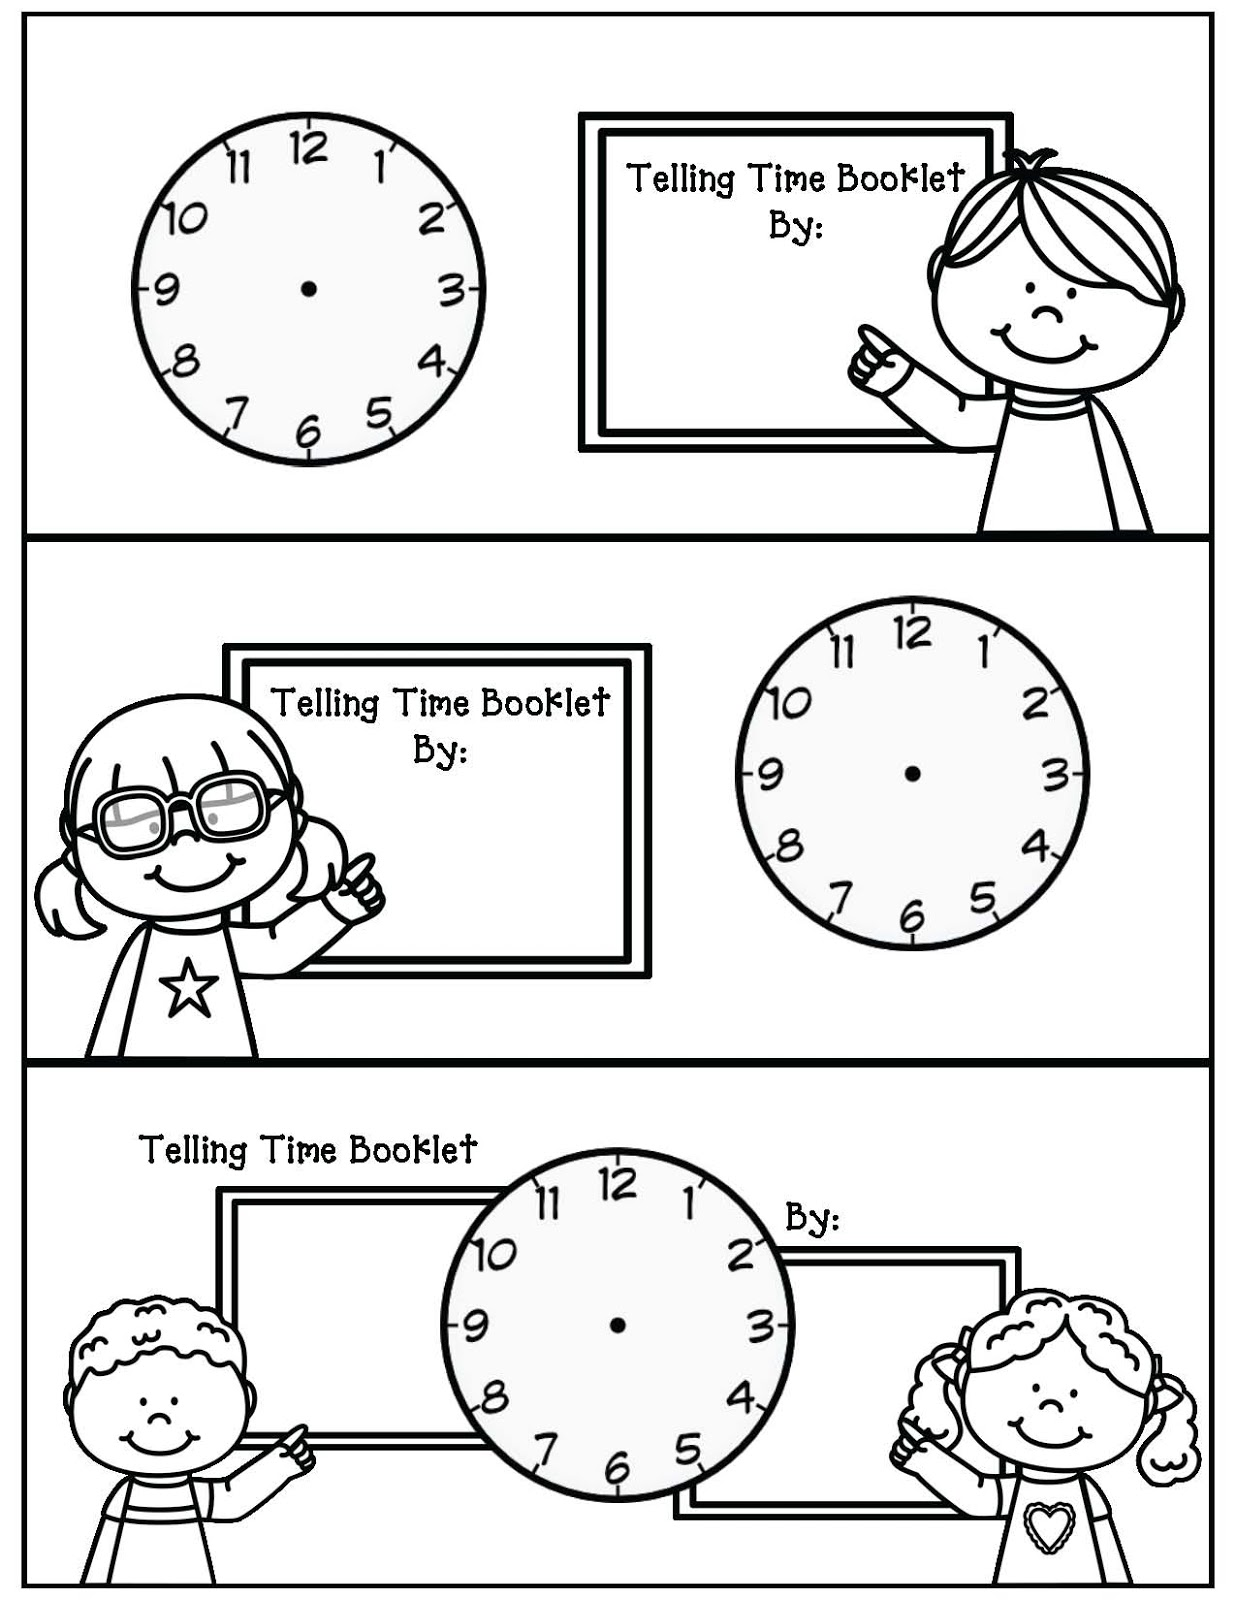 Worksheet Telling Time To The Half Hour classroom freebies telling time to the hour half with apples this 20 page free packet includes 2 assessments plus a black and white template cover so children can make their own itty